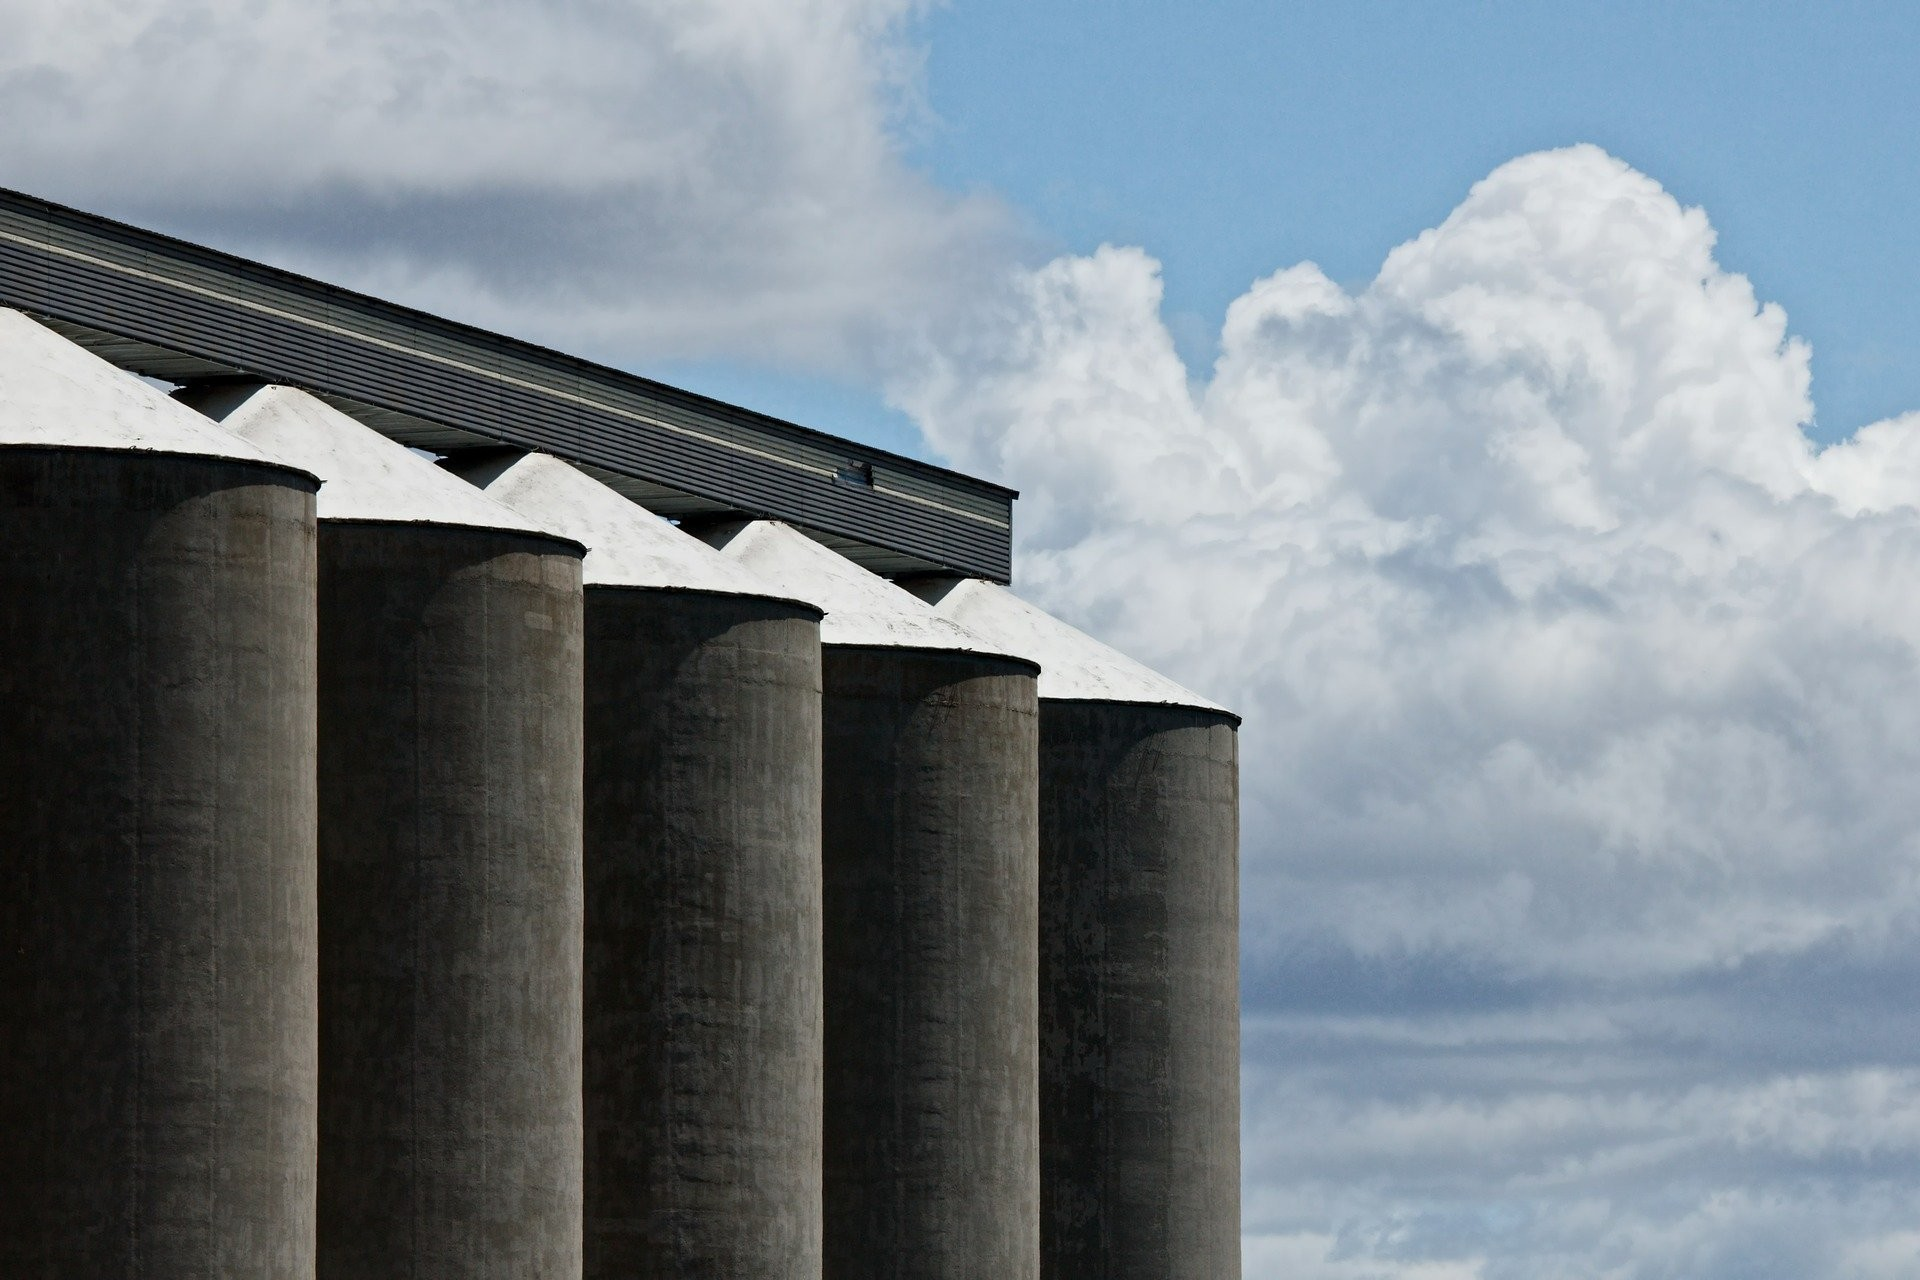 Silos can be bad for our health